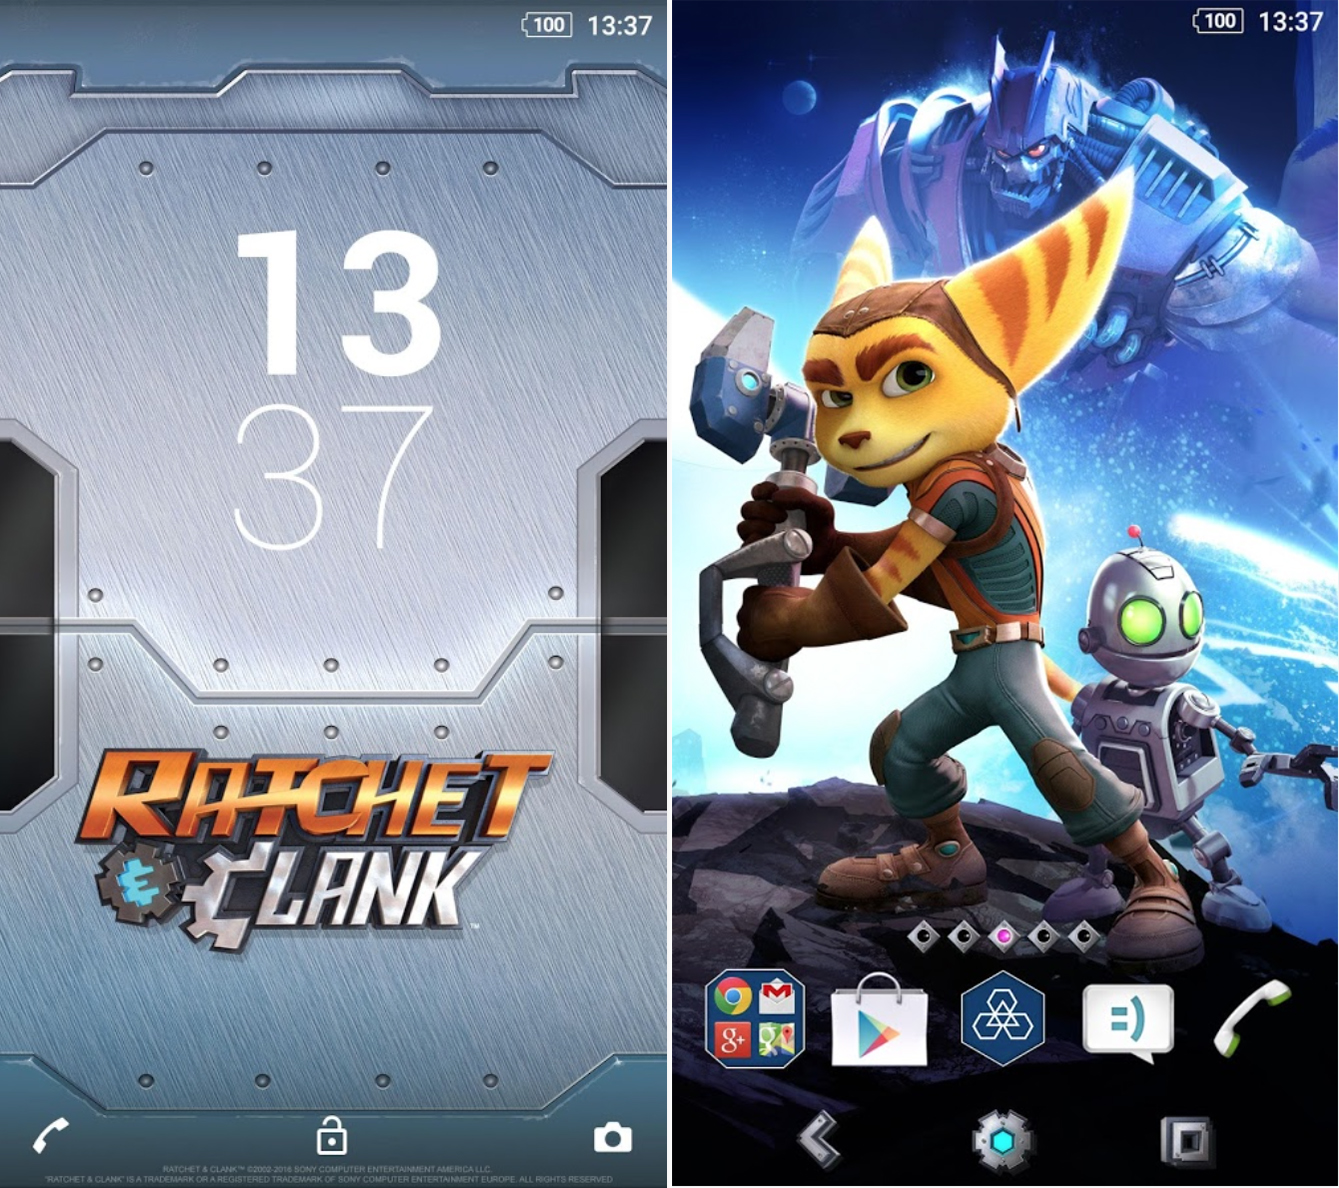 Xperia Ratchet & Clank Theme